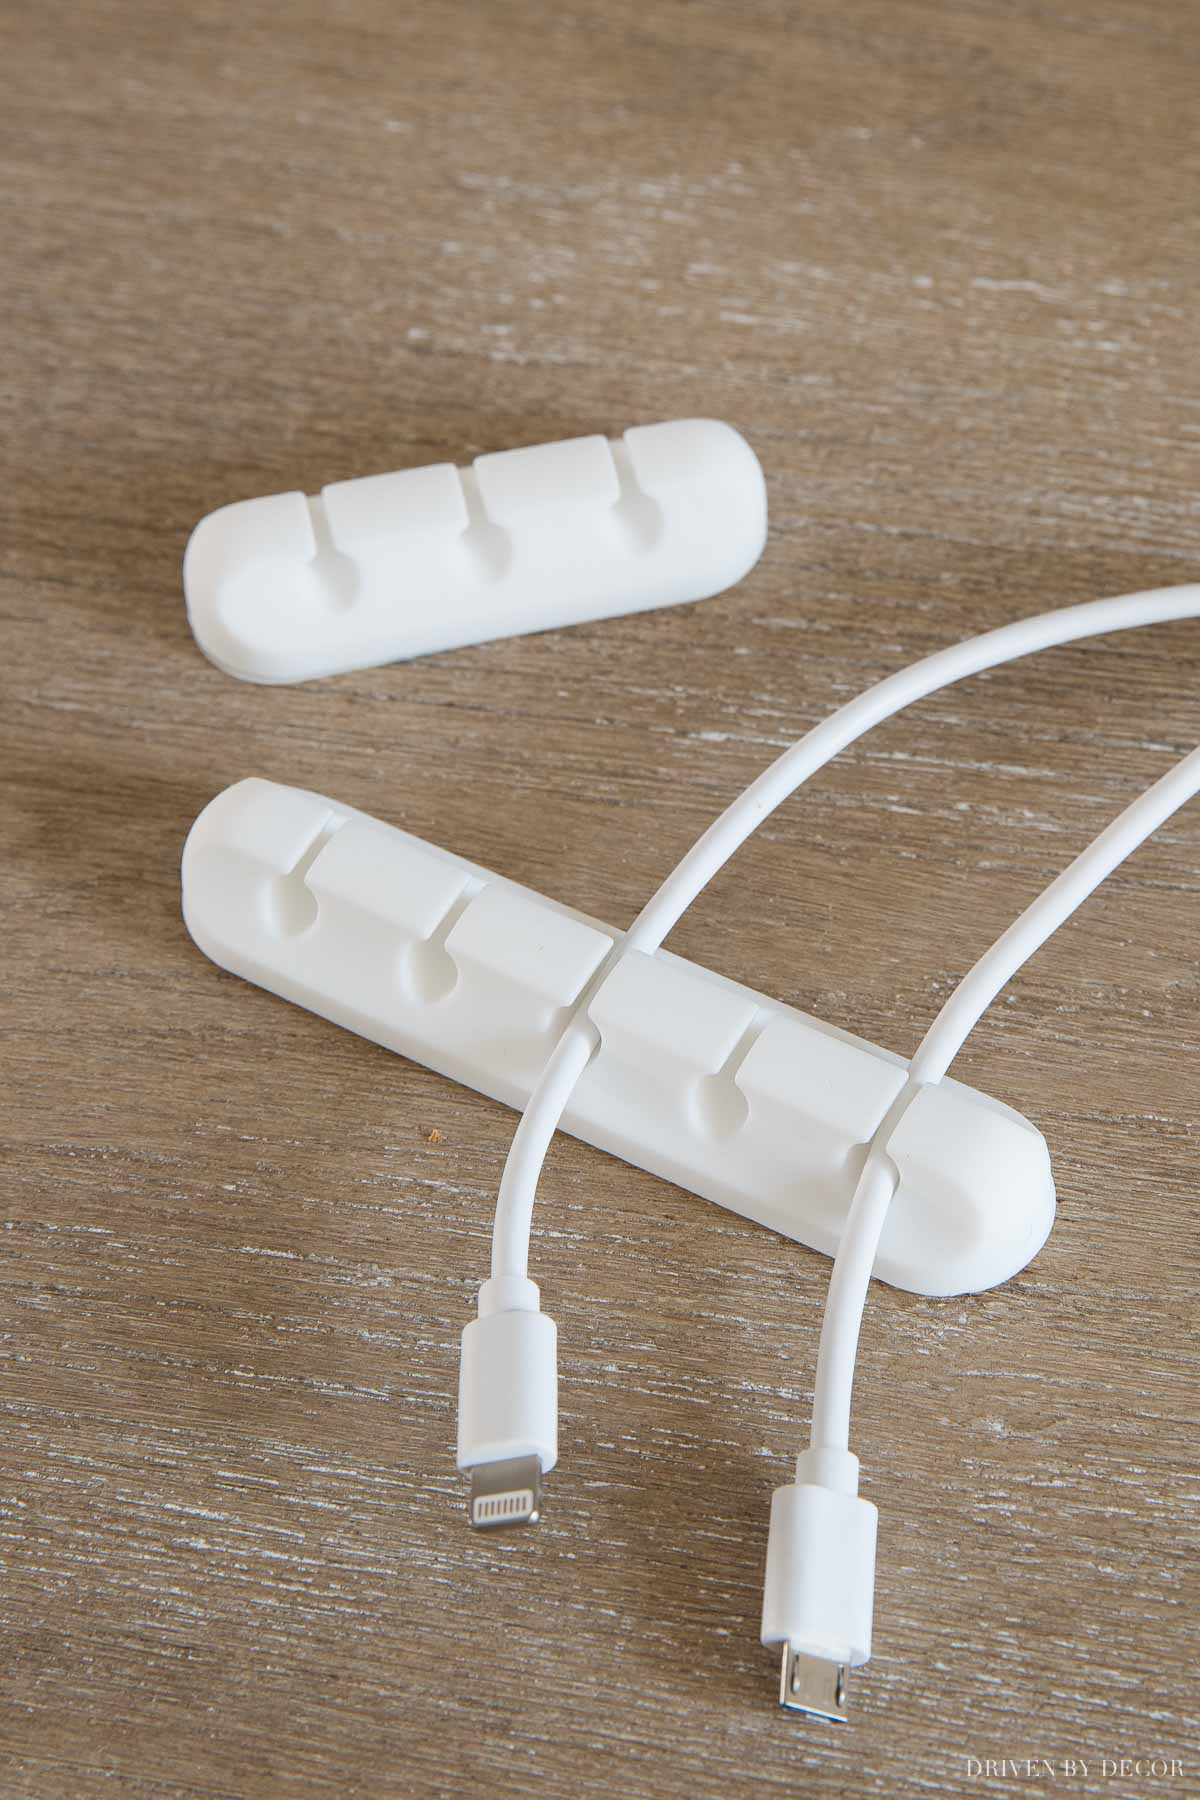 These adhesive cord holders are awesome for keeping cords from slipping behind your desk!